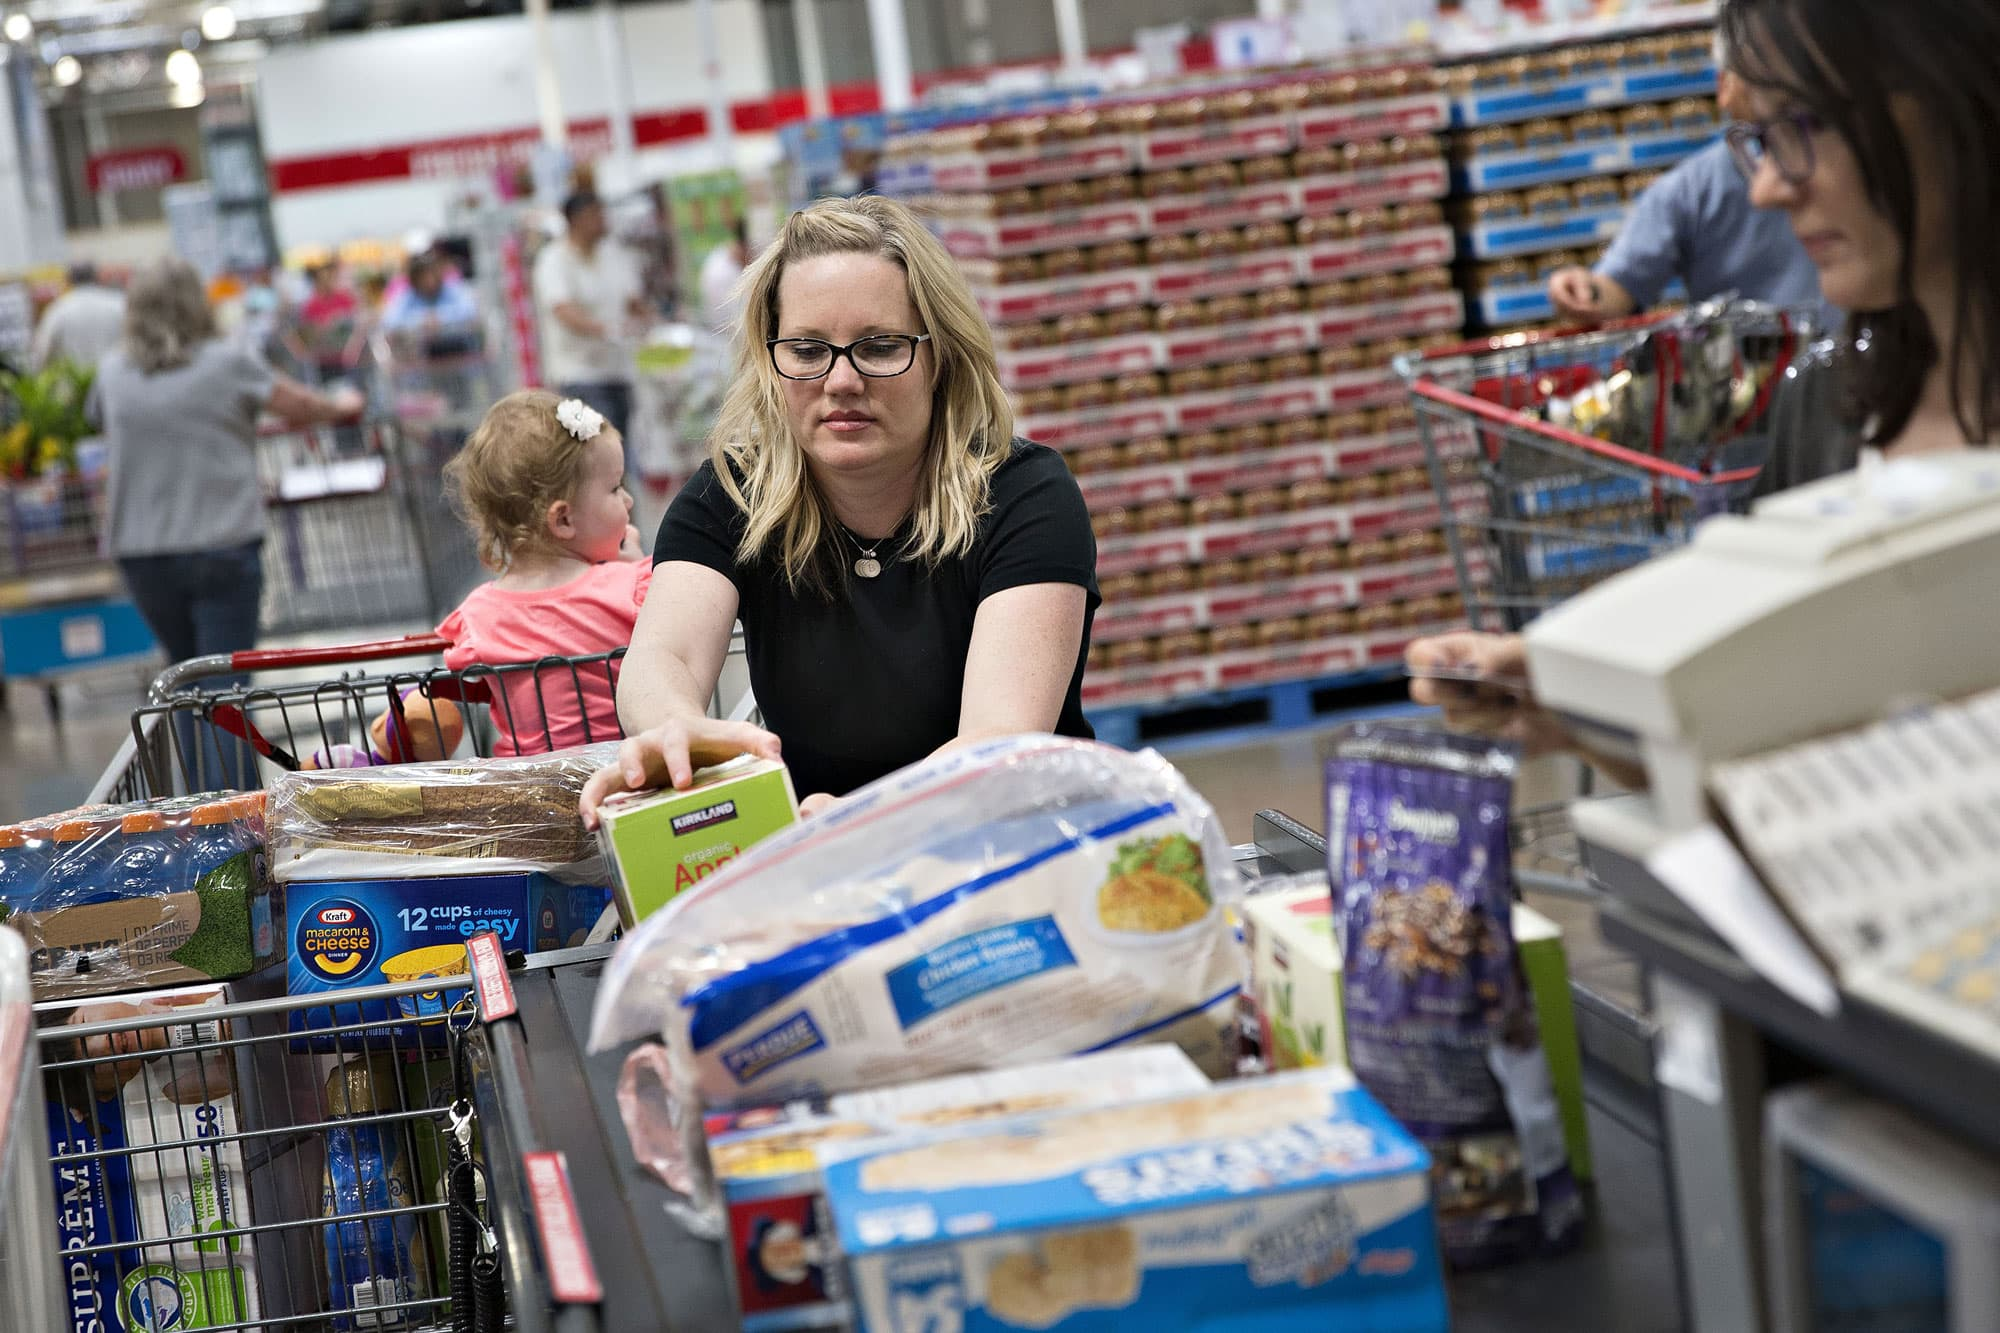 A customer unloads a cart at a cash register at a Costco Wholesale store in Naperville, Illinois.